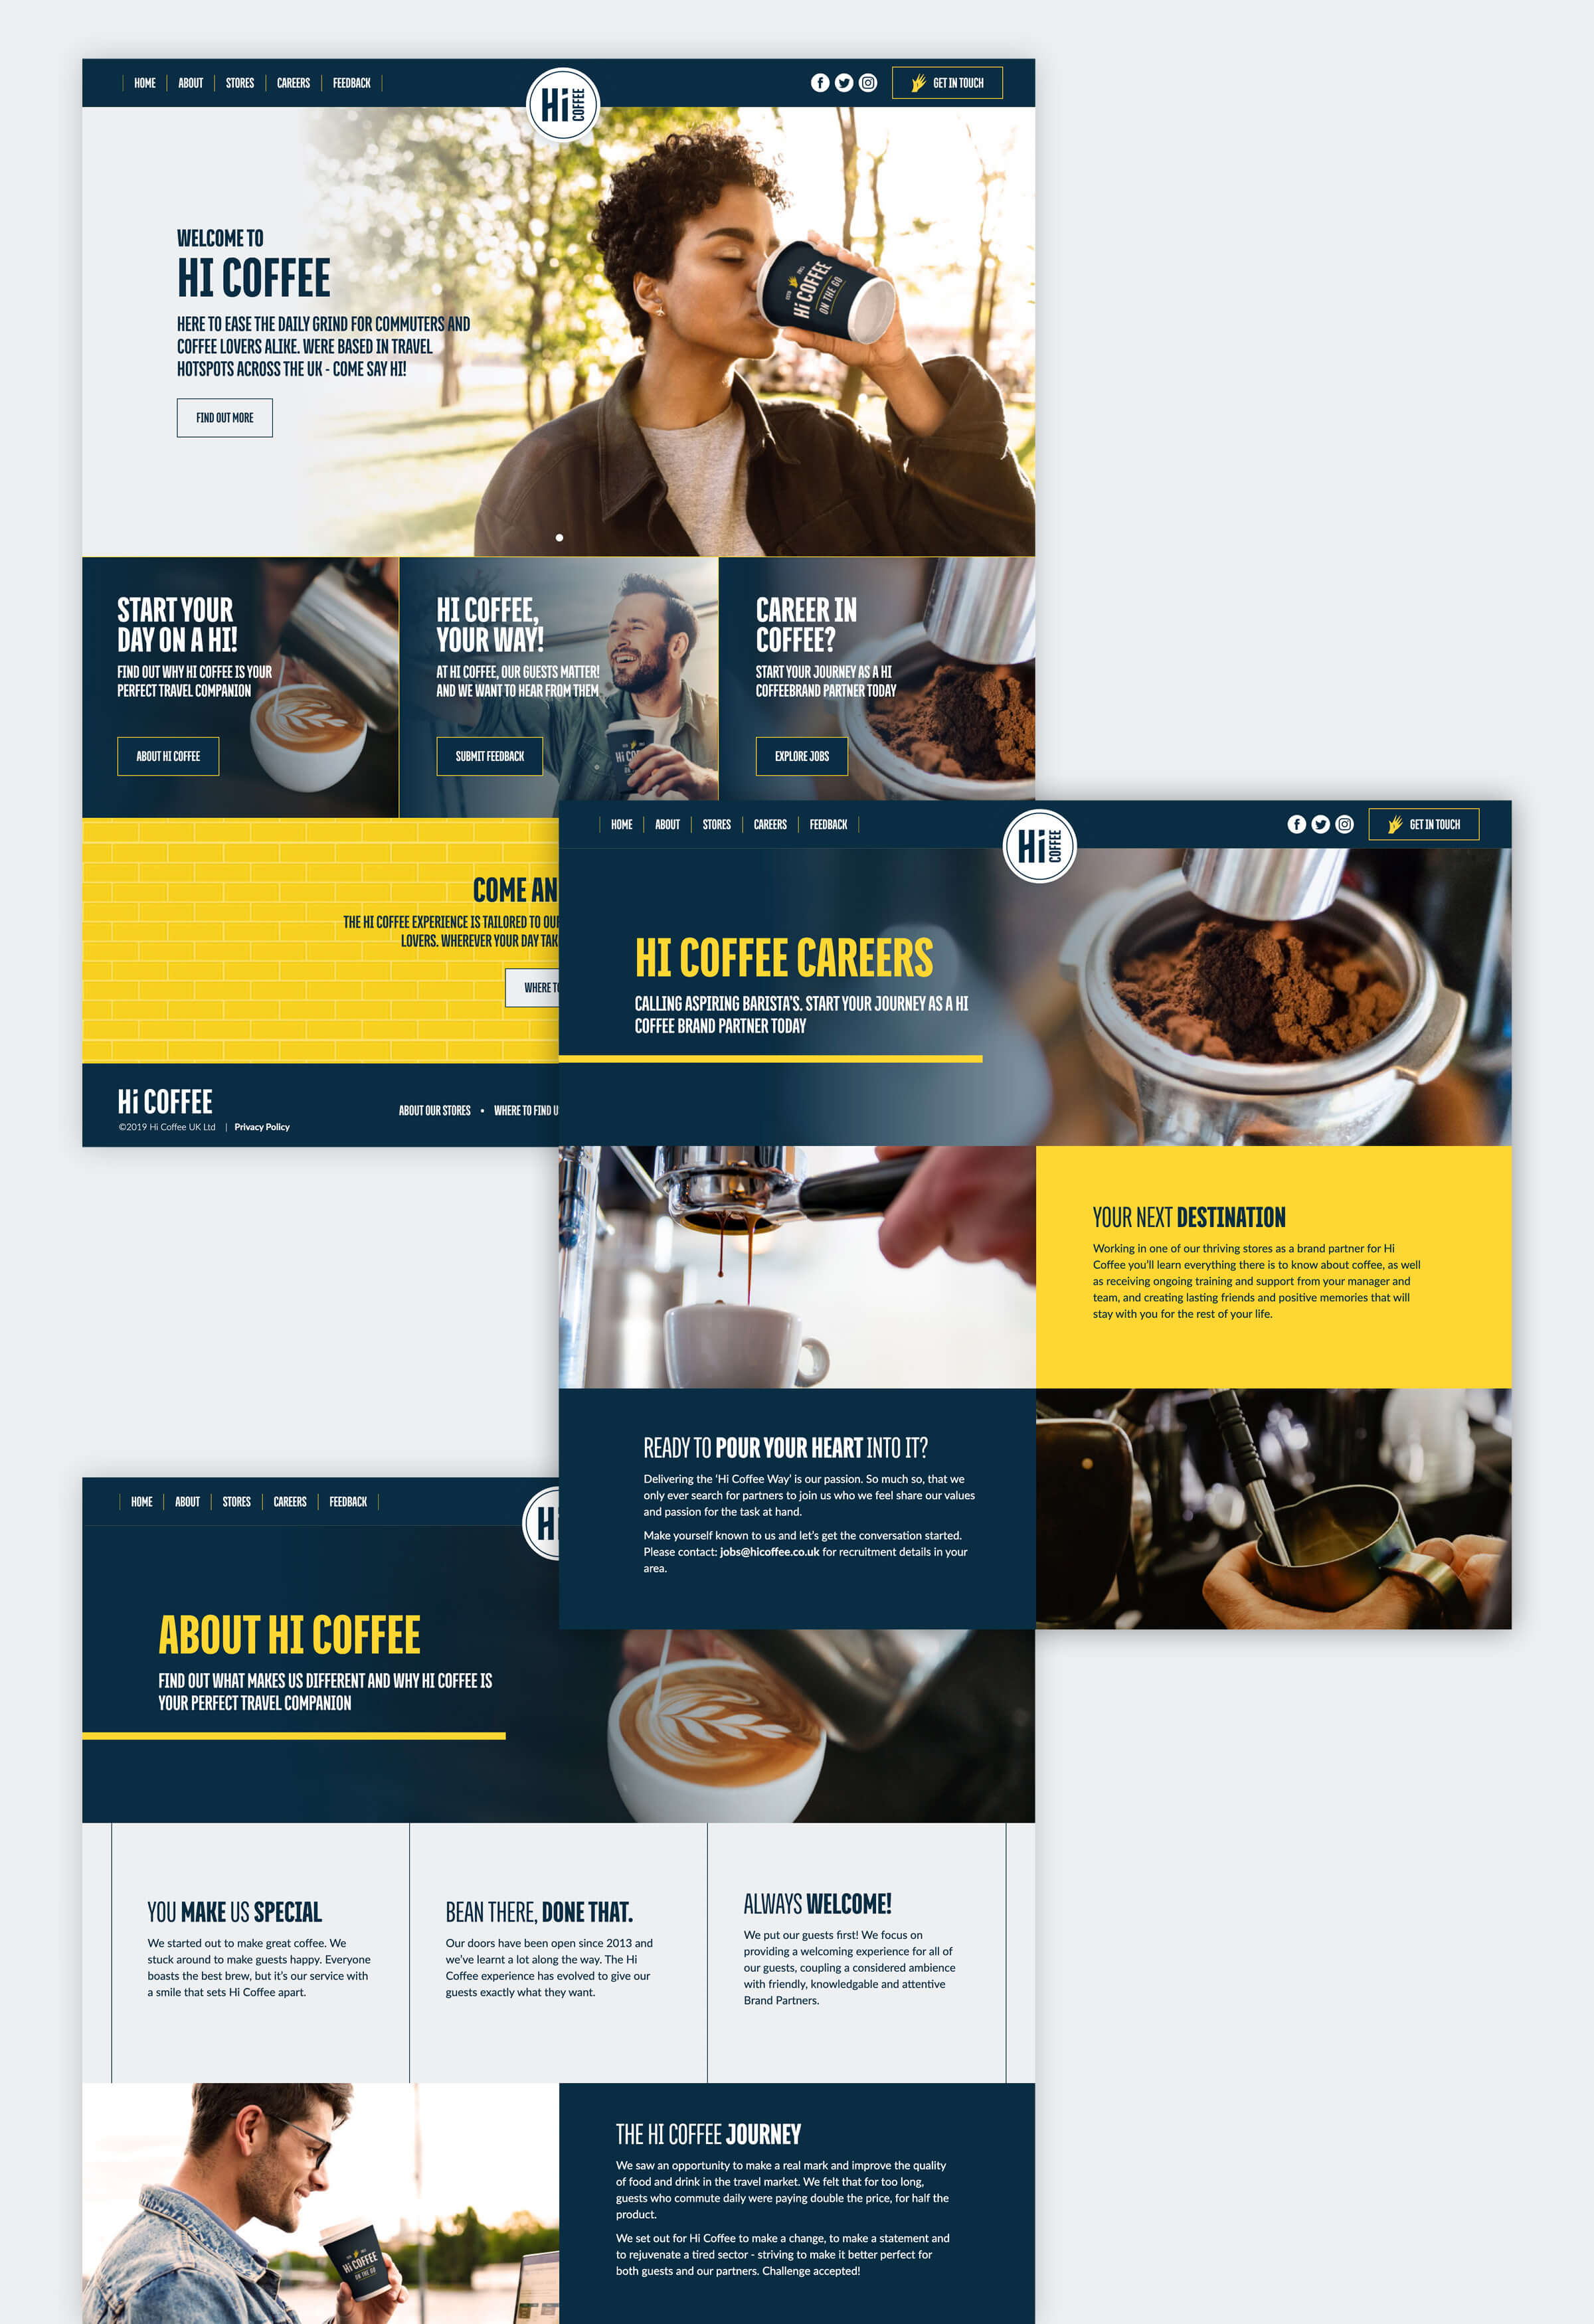 Hi Coffee website design